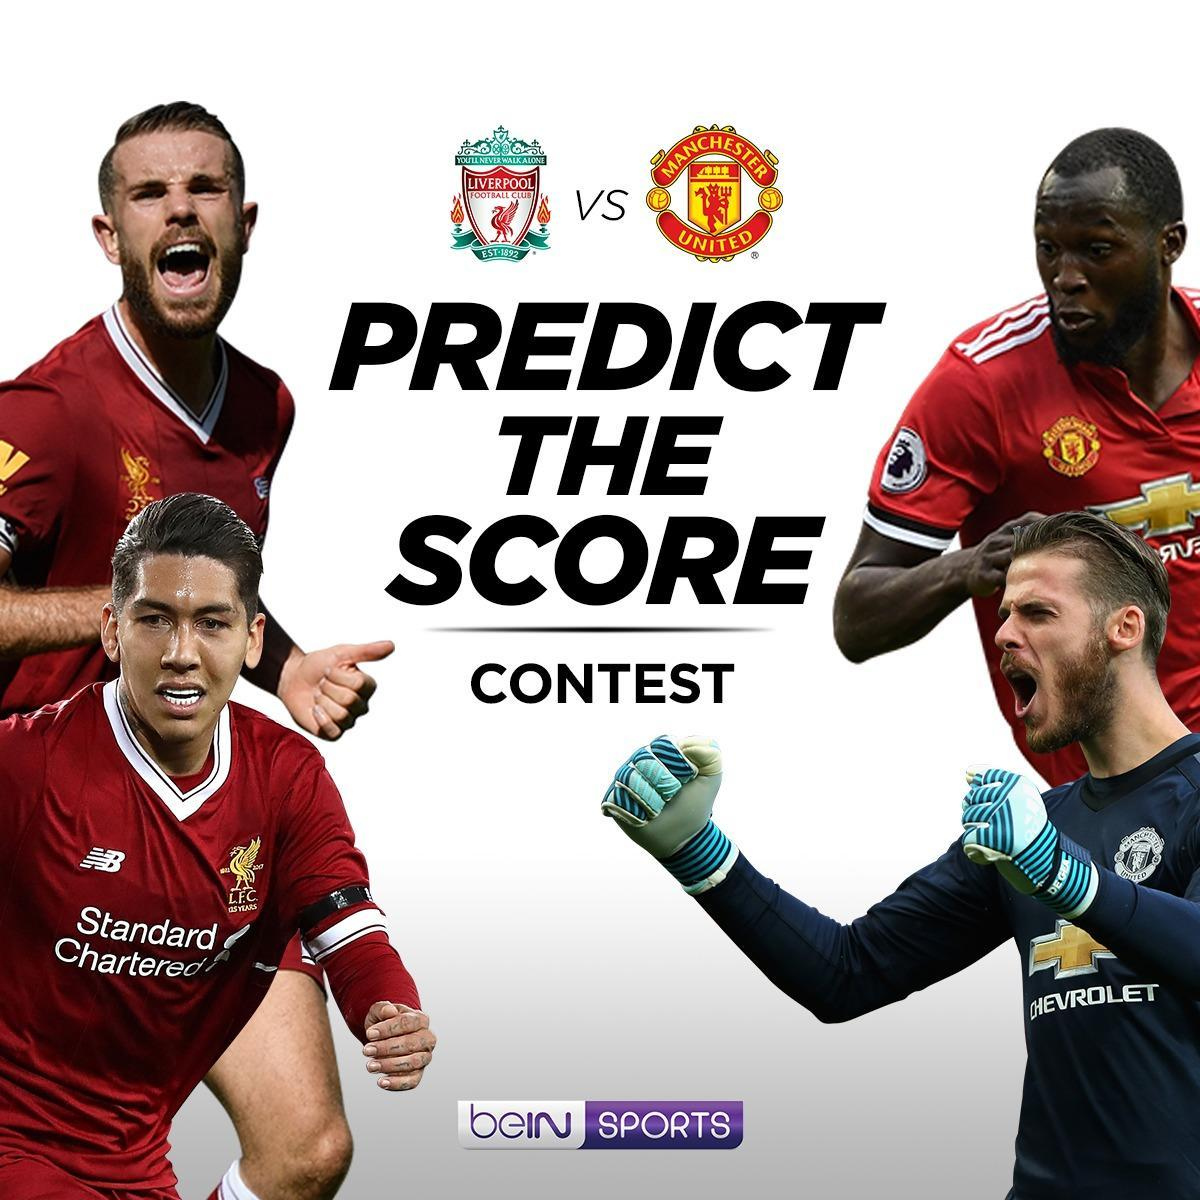 Predict the score contest (LIV vs MUFC)